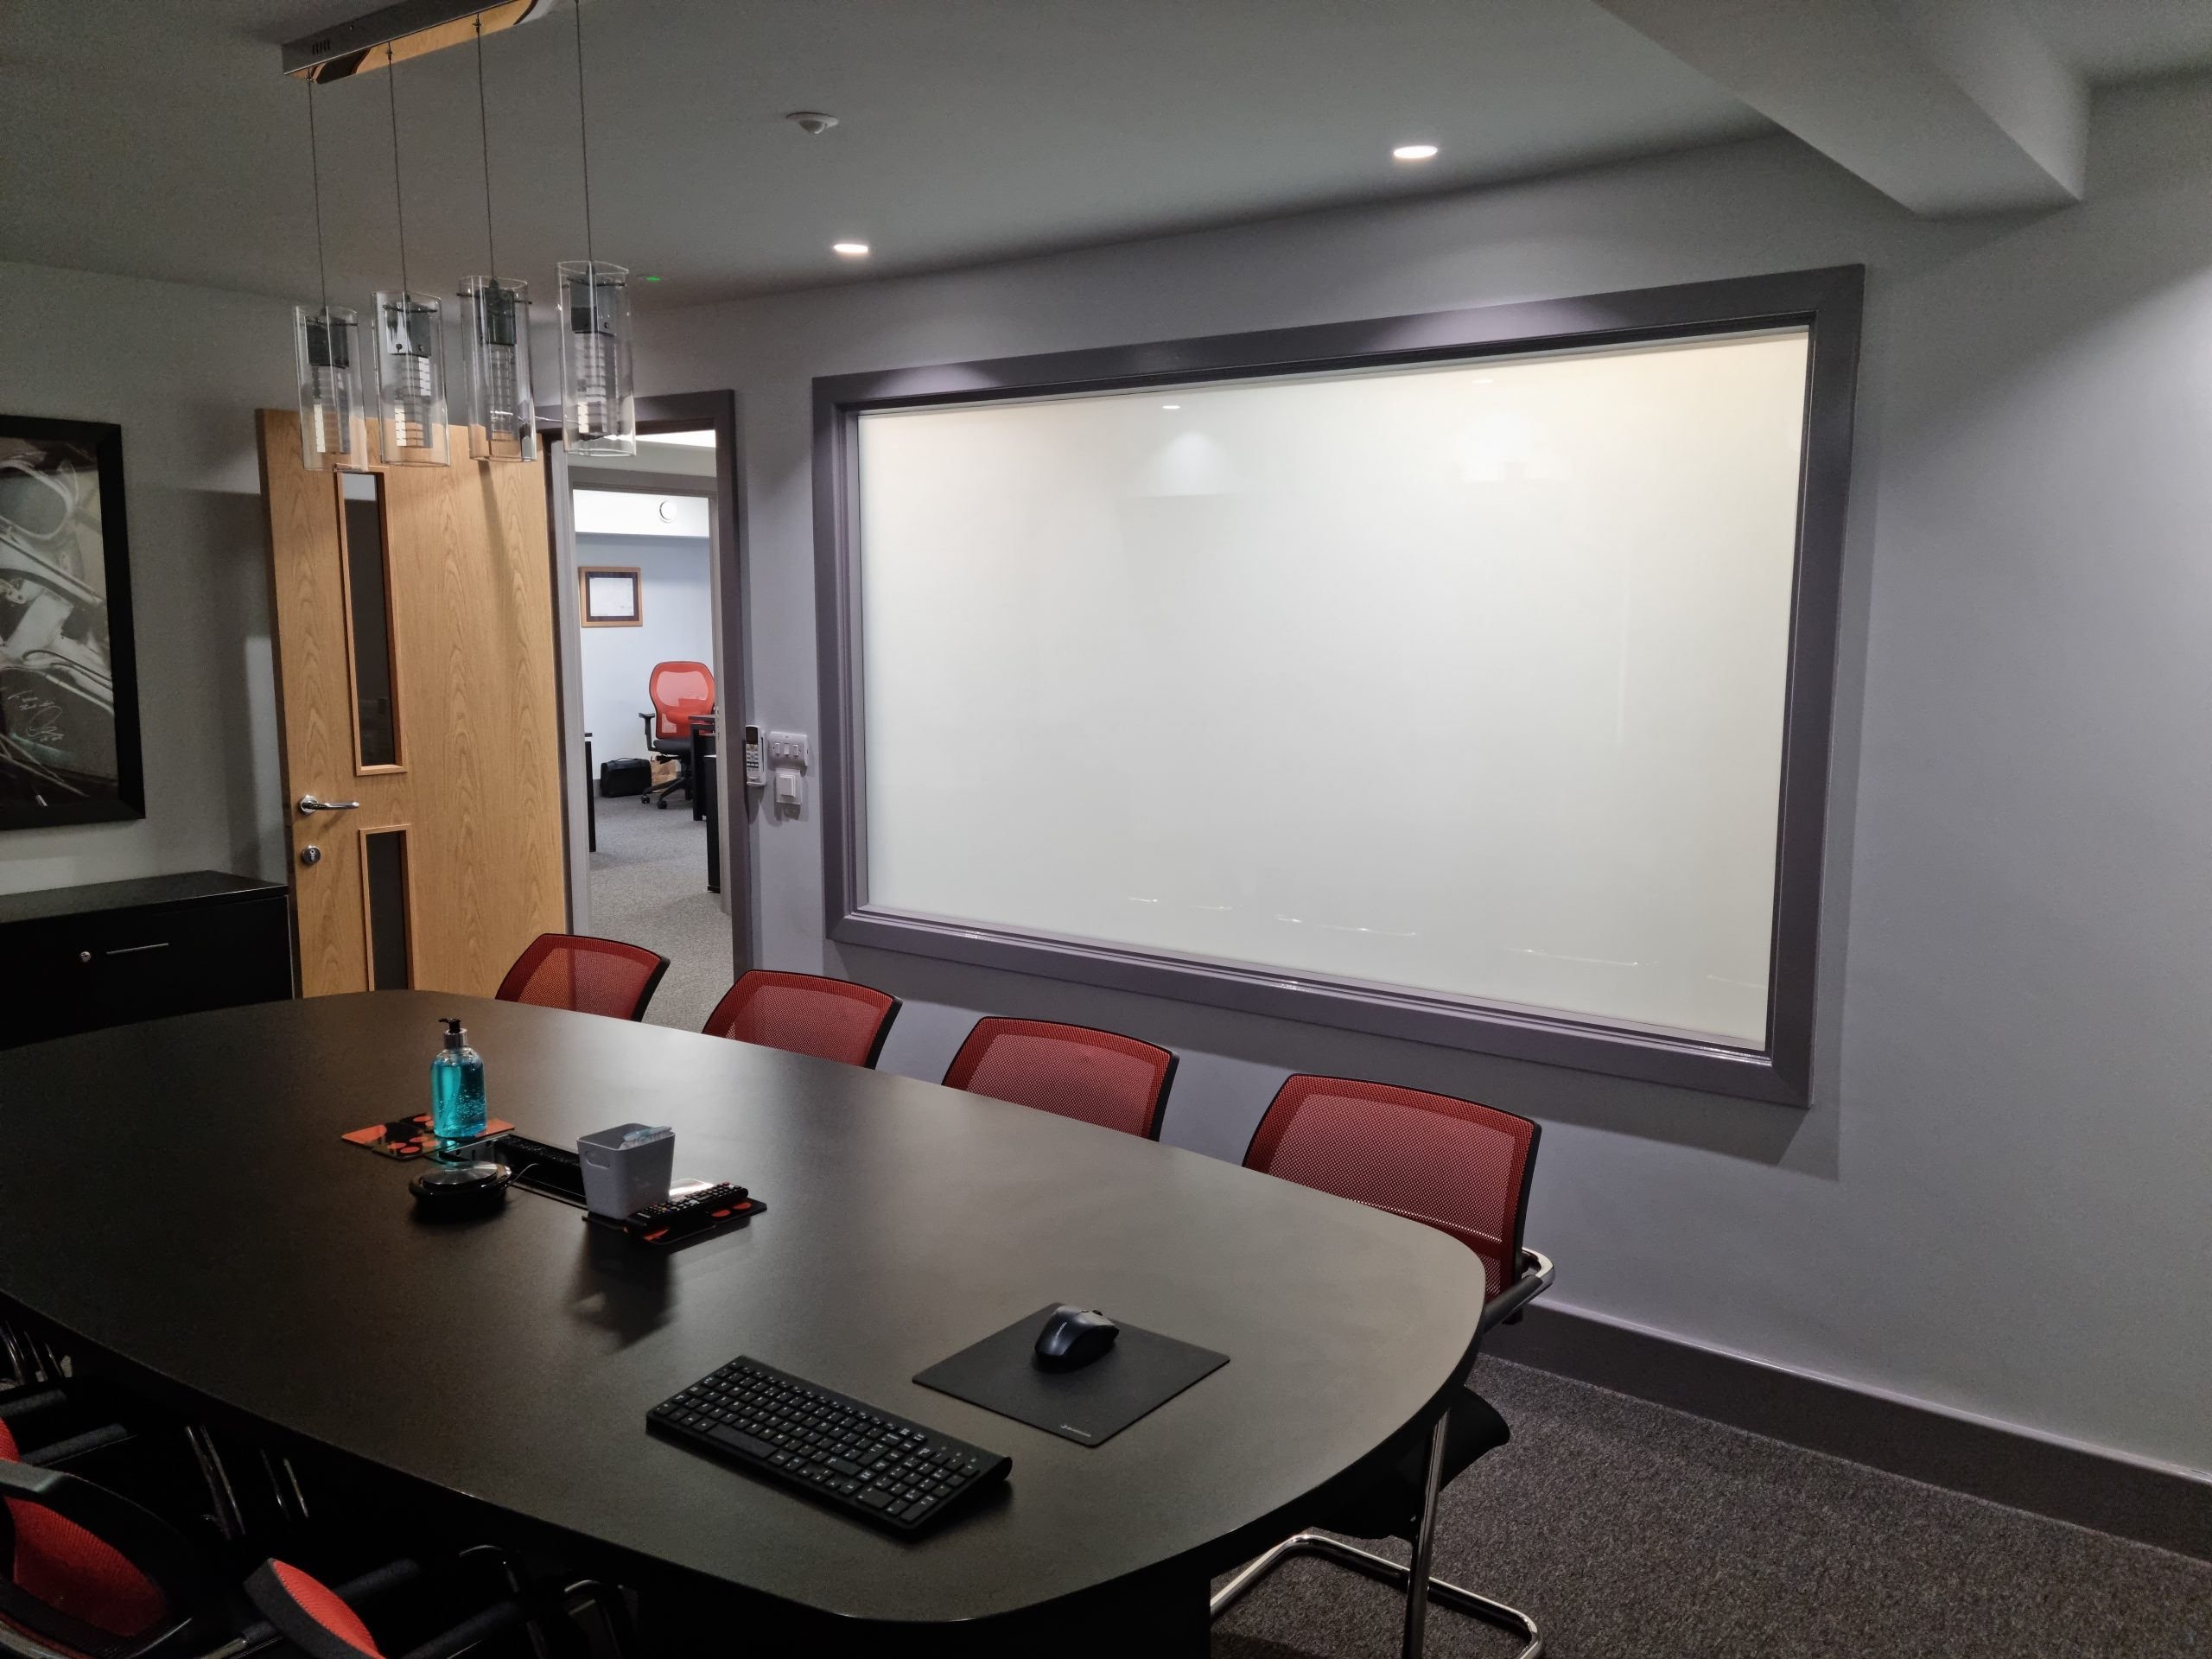 privacy glass in meeting room